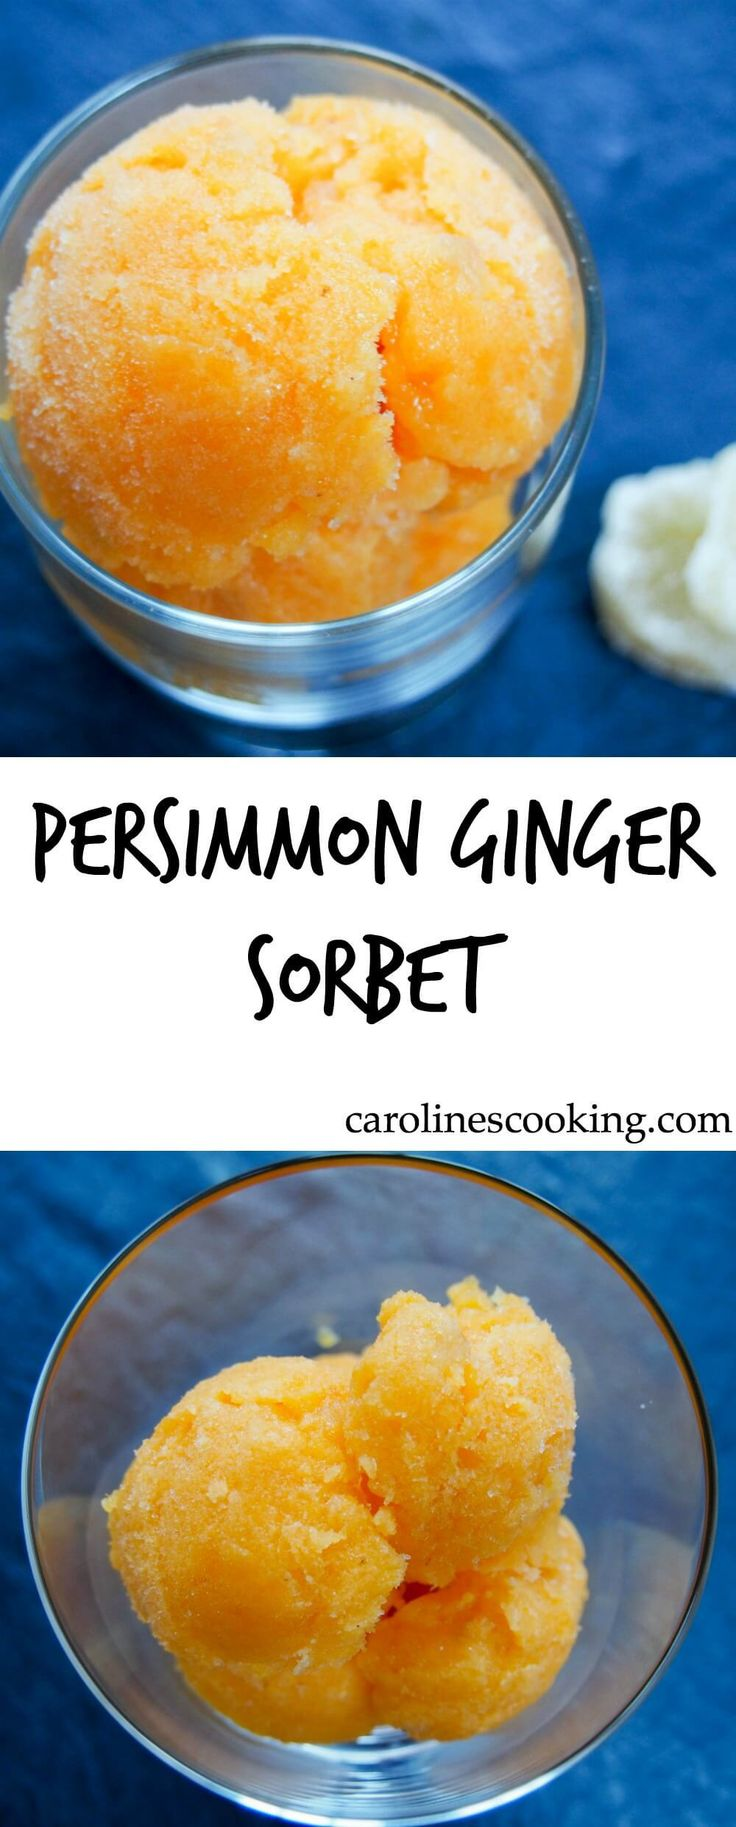 This delicious persimmon ginger sorbet is easy to make and both looks and tastes great, the zingy ginger complimenting the smooth, fragrant persimmon. A tasty frozen treat, great for dessert or as a palette cleanser.